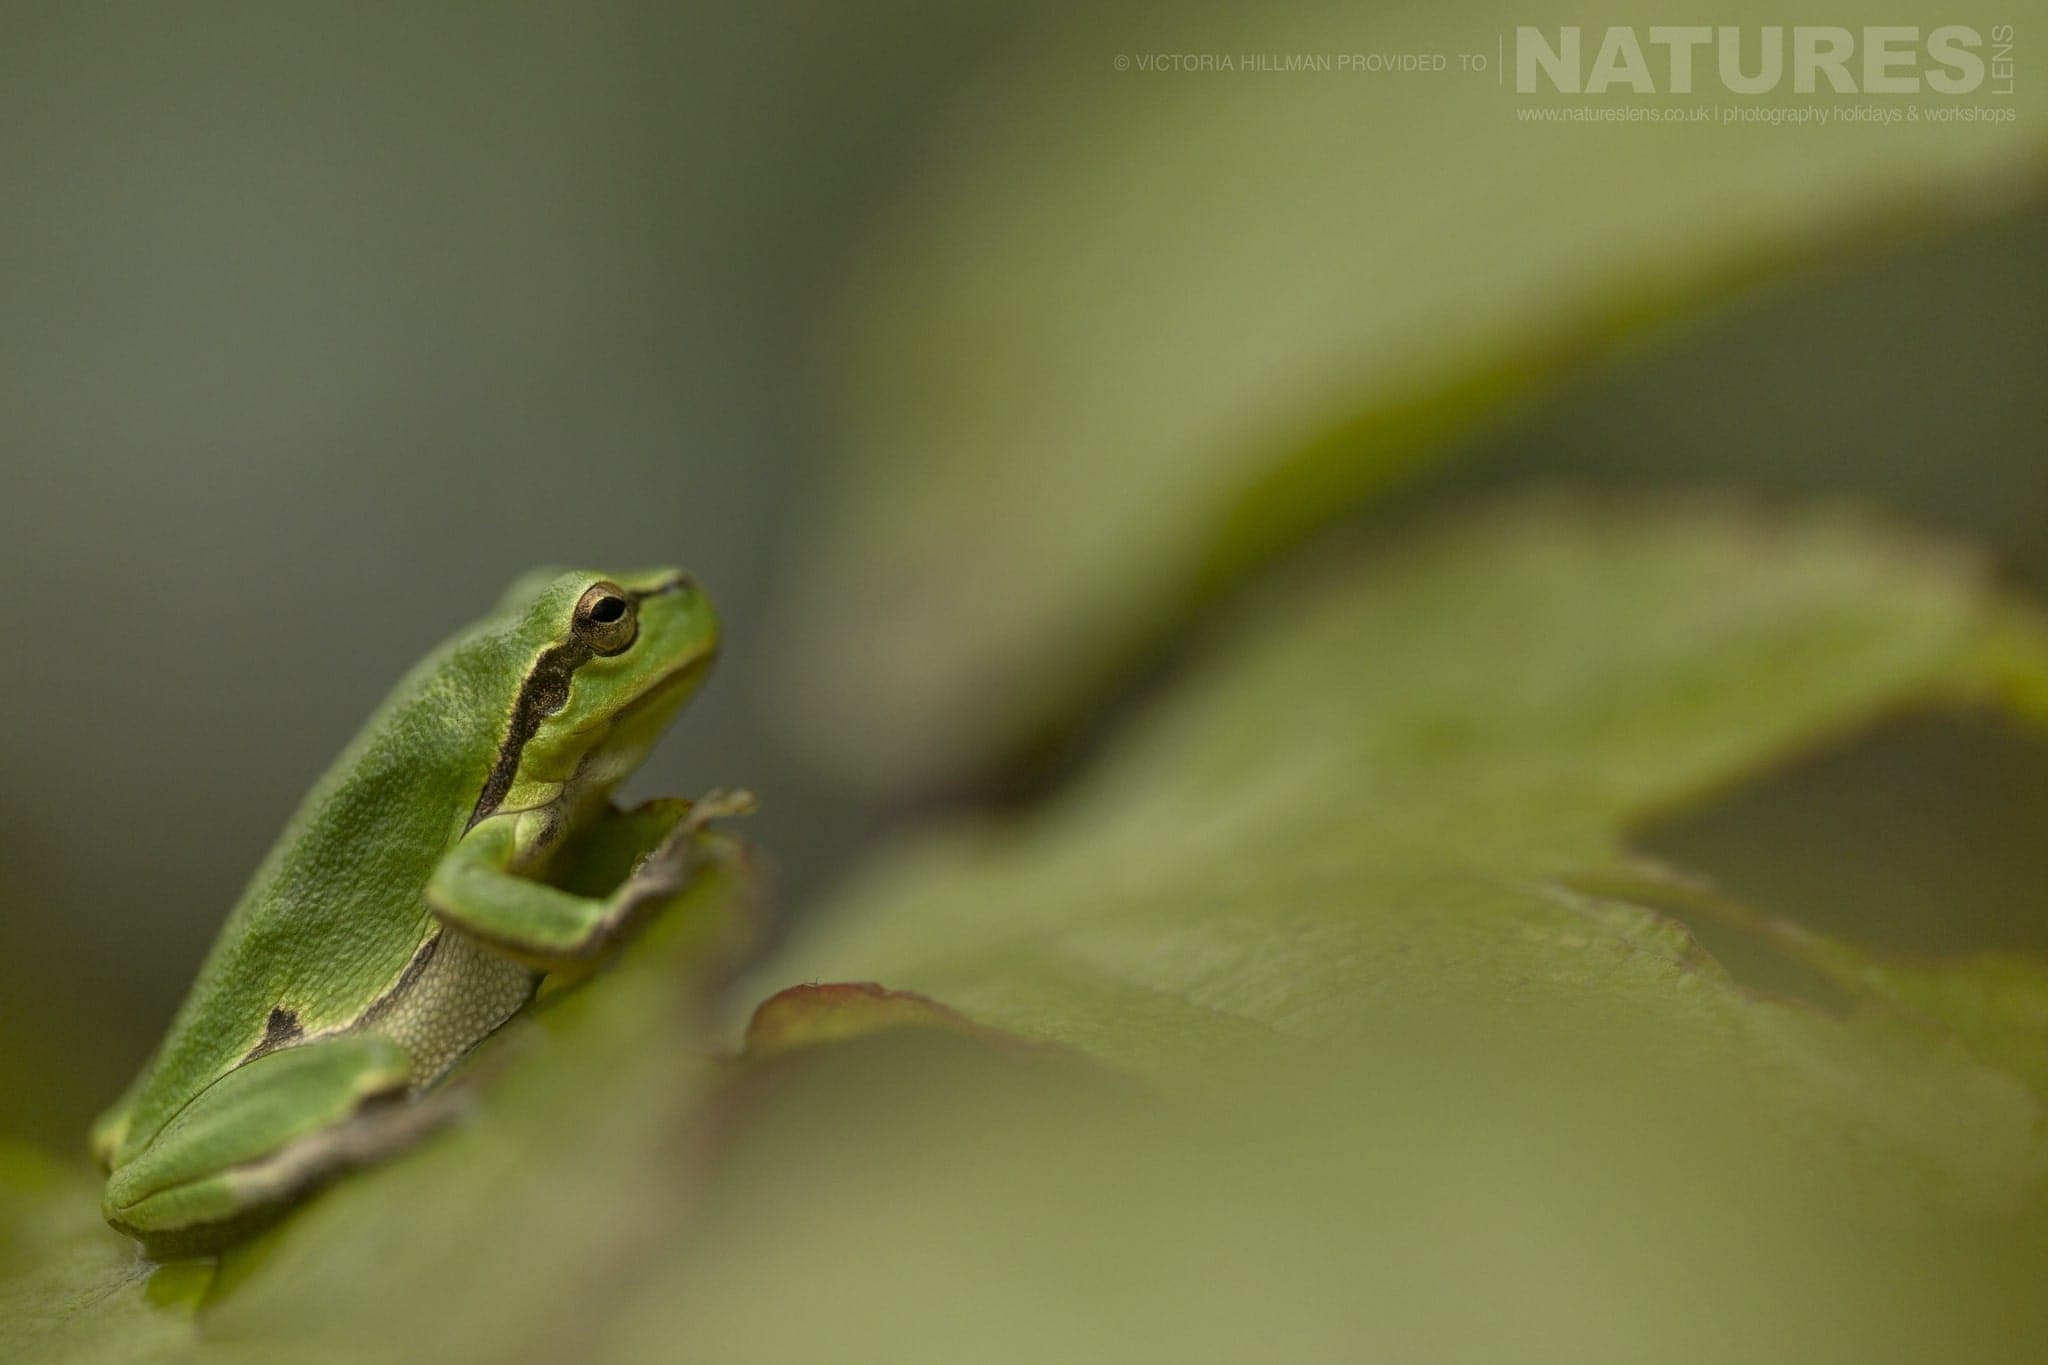 A Young European Tree Frog   One Of The Species That May Be Photographed During The NaturesLens Reptiles & Amphibians Of Bulgaria Photography Holiday